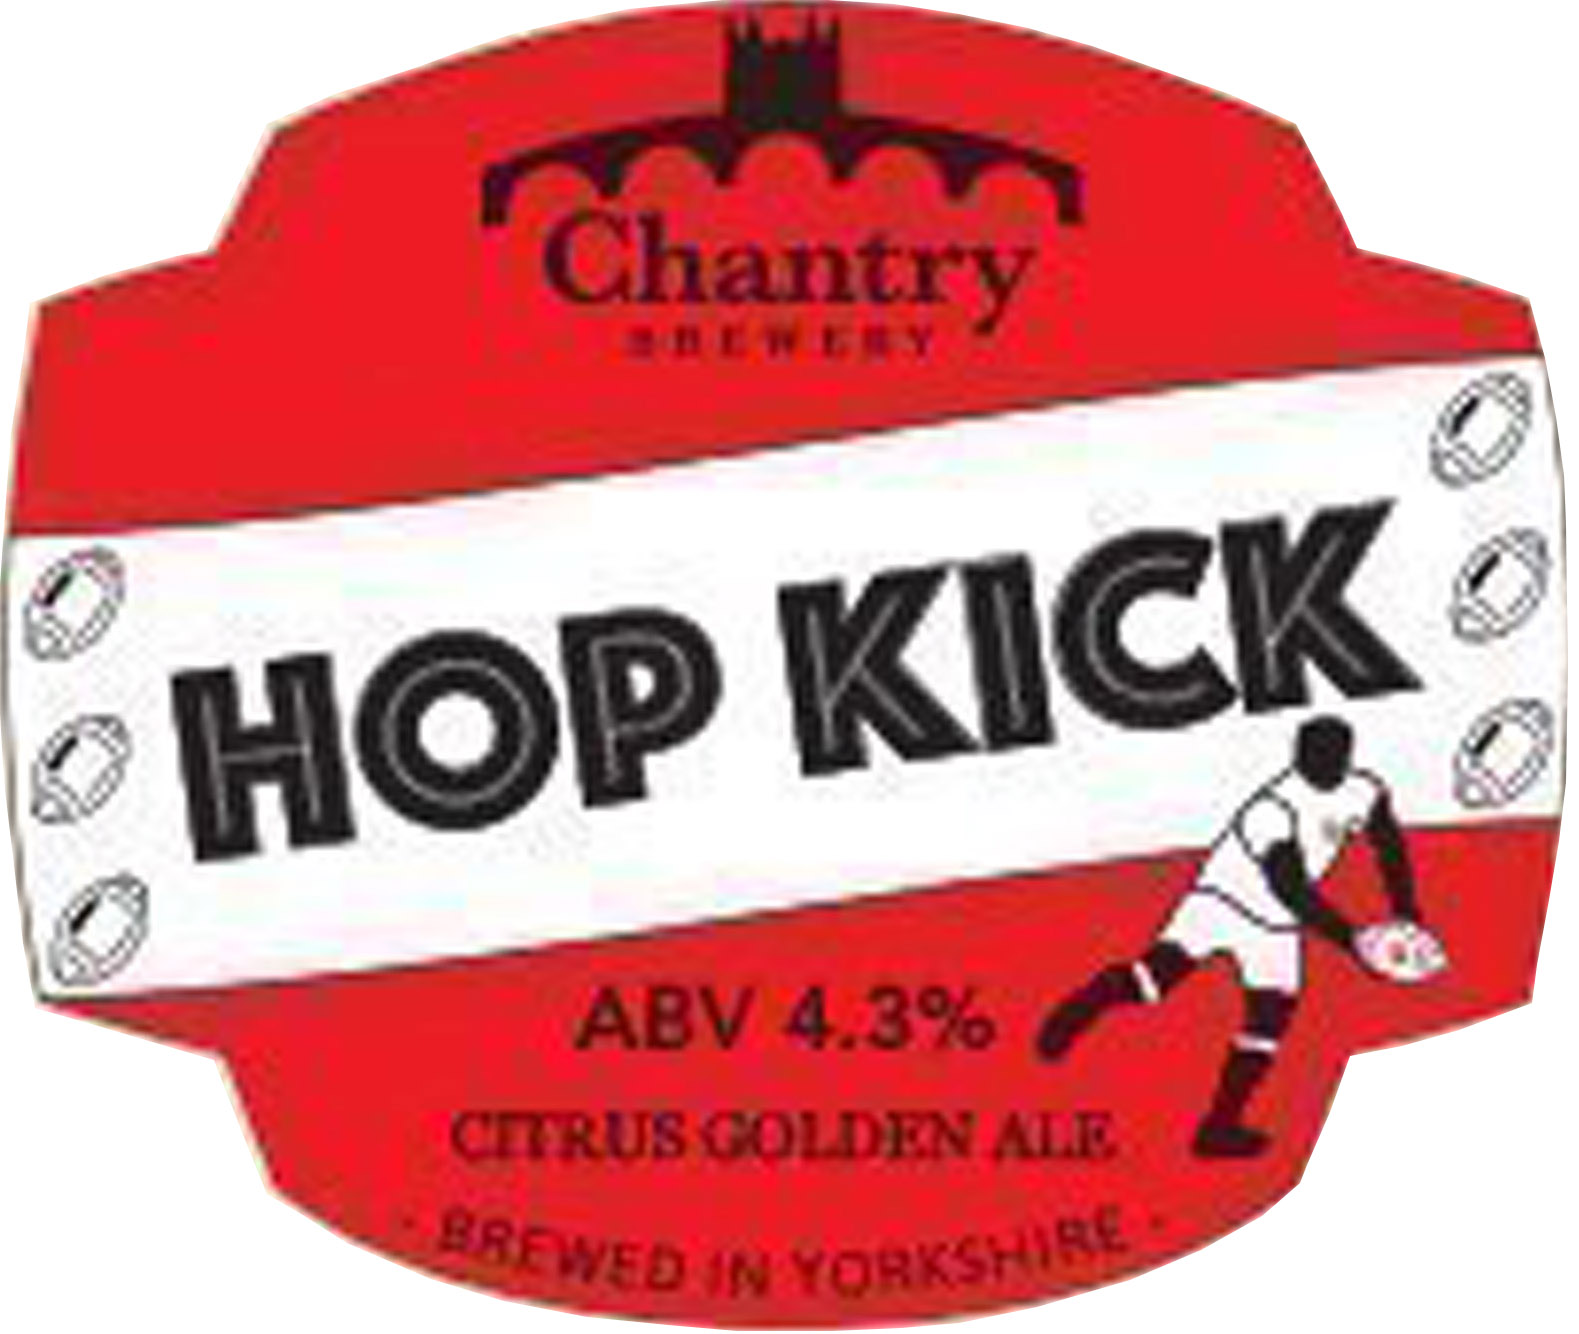 Chantry Brewery Hop Kick